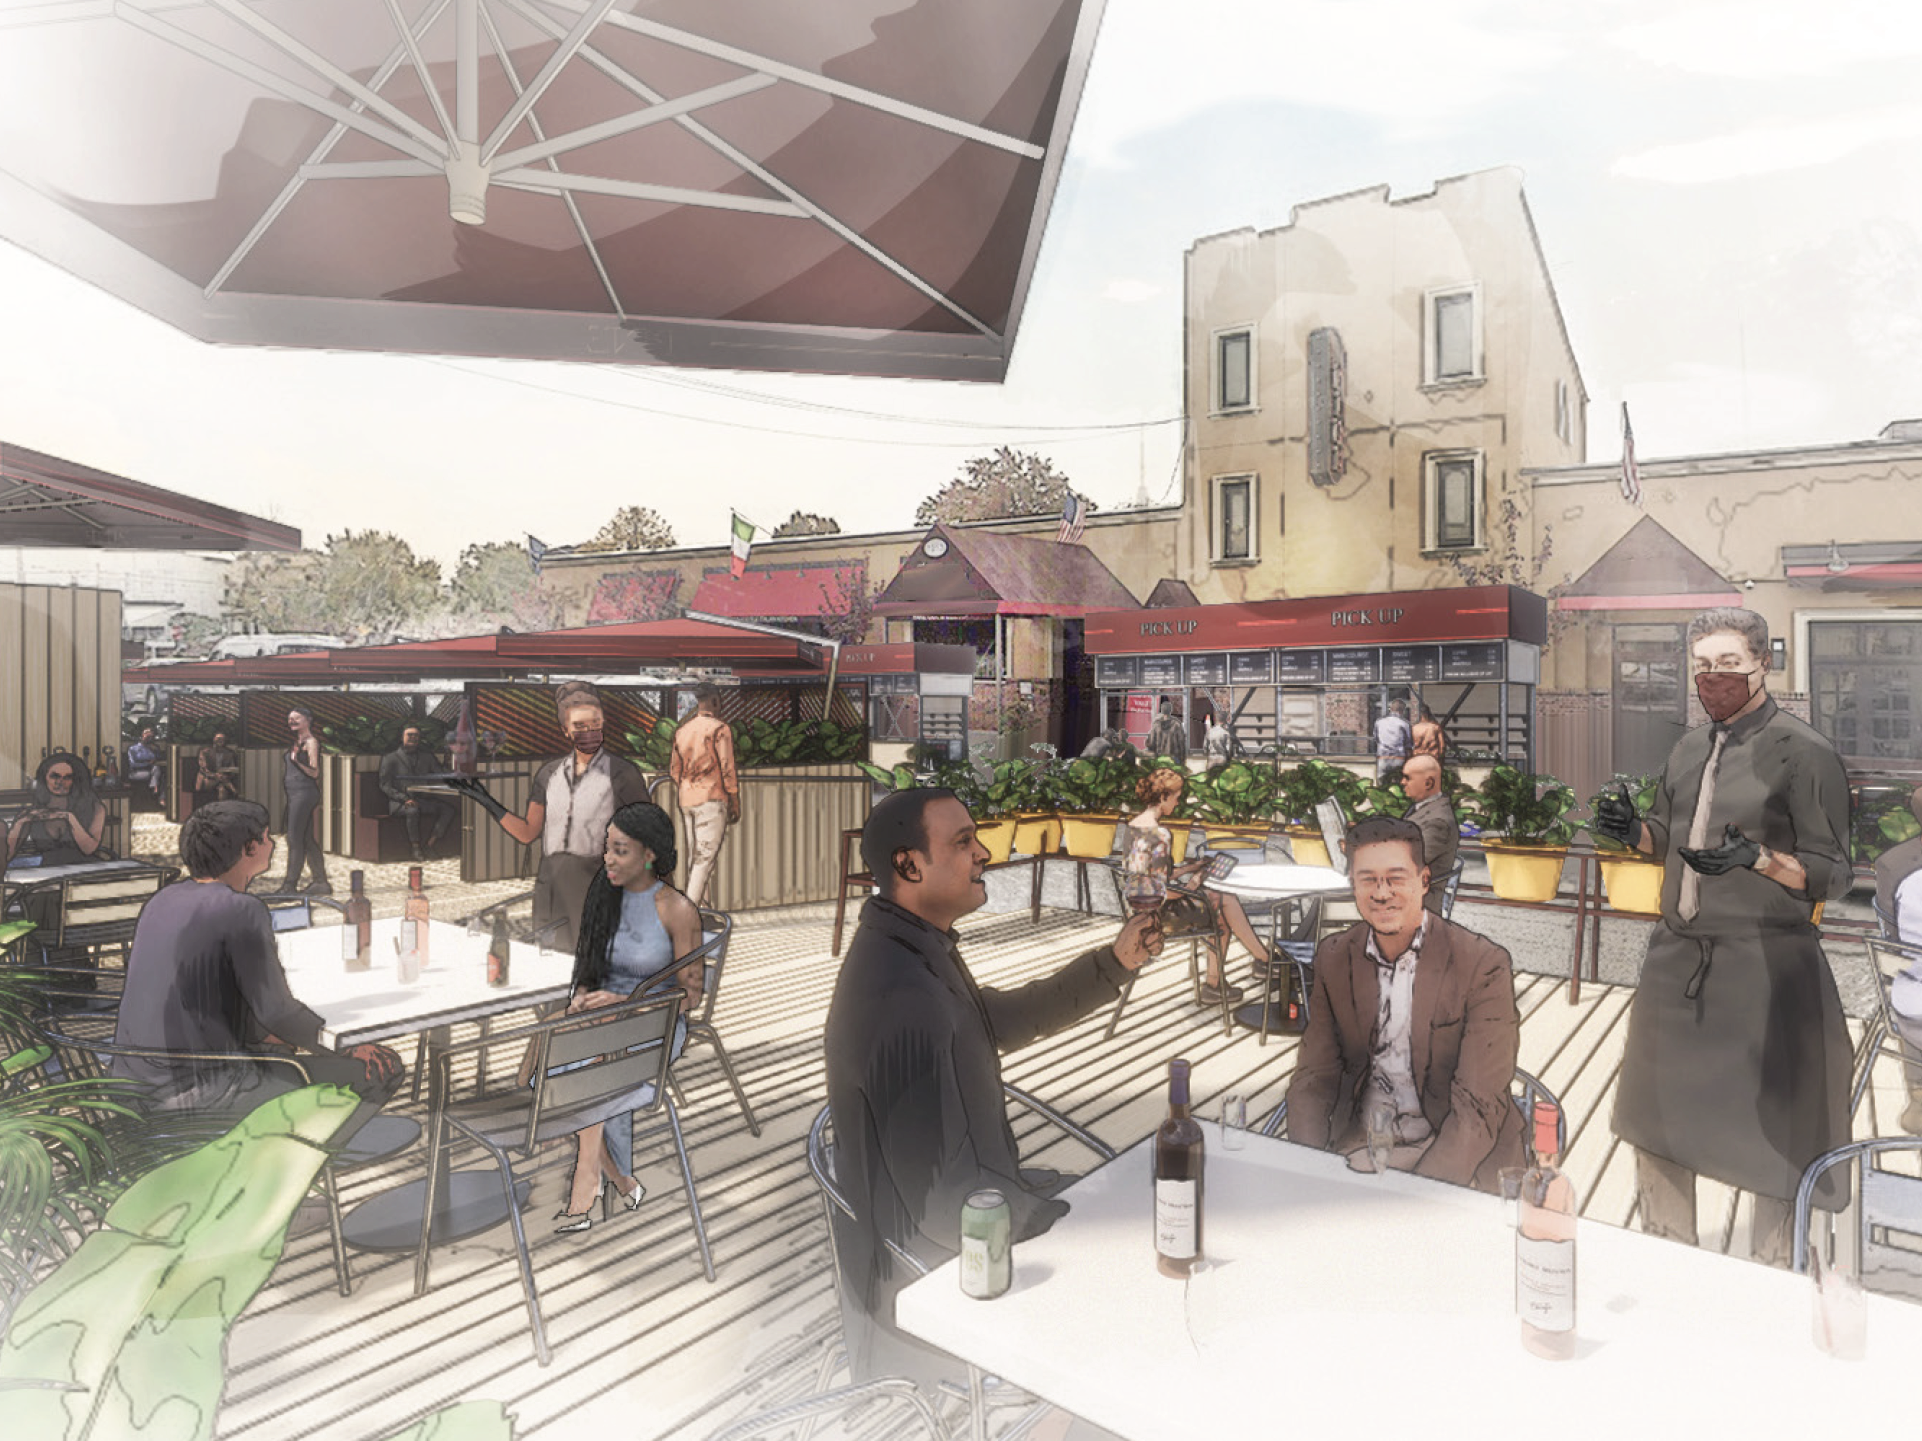 This is what outdoor dining may soon look like in NYC